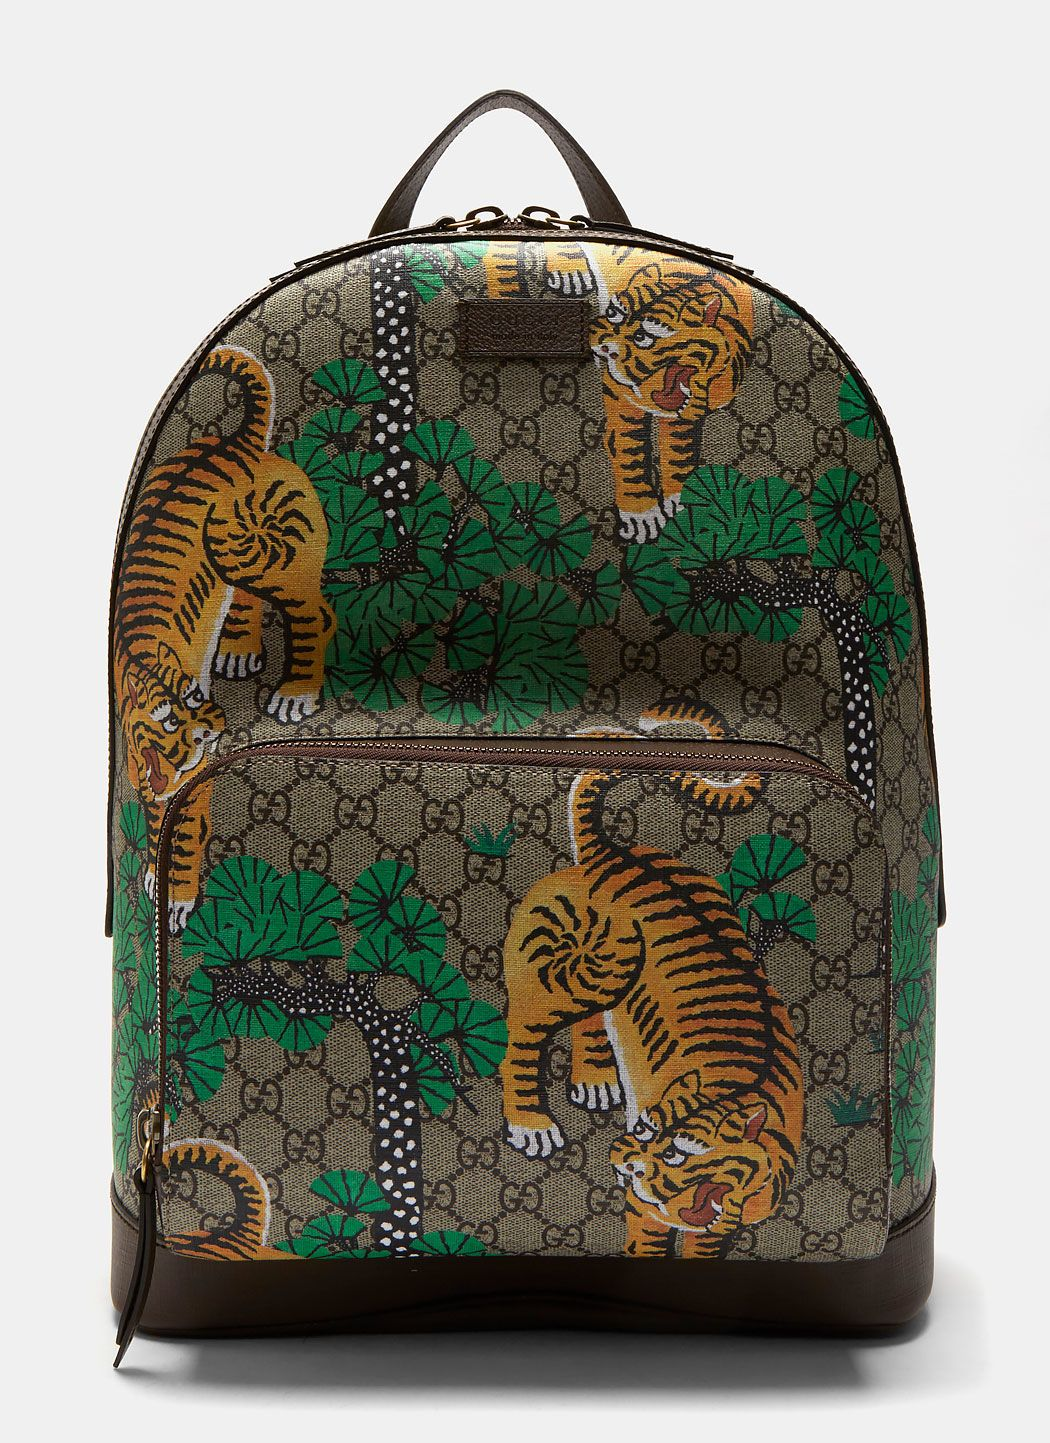 d9da8348a822 GUCCI Men'S Zaino Bengal Tiger Gg Print Backpack In Brown. #gucci #bags  #leather #canvas #backpacks #